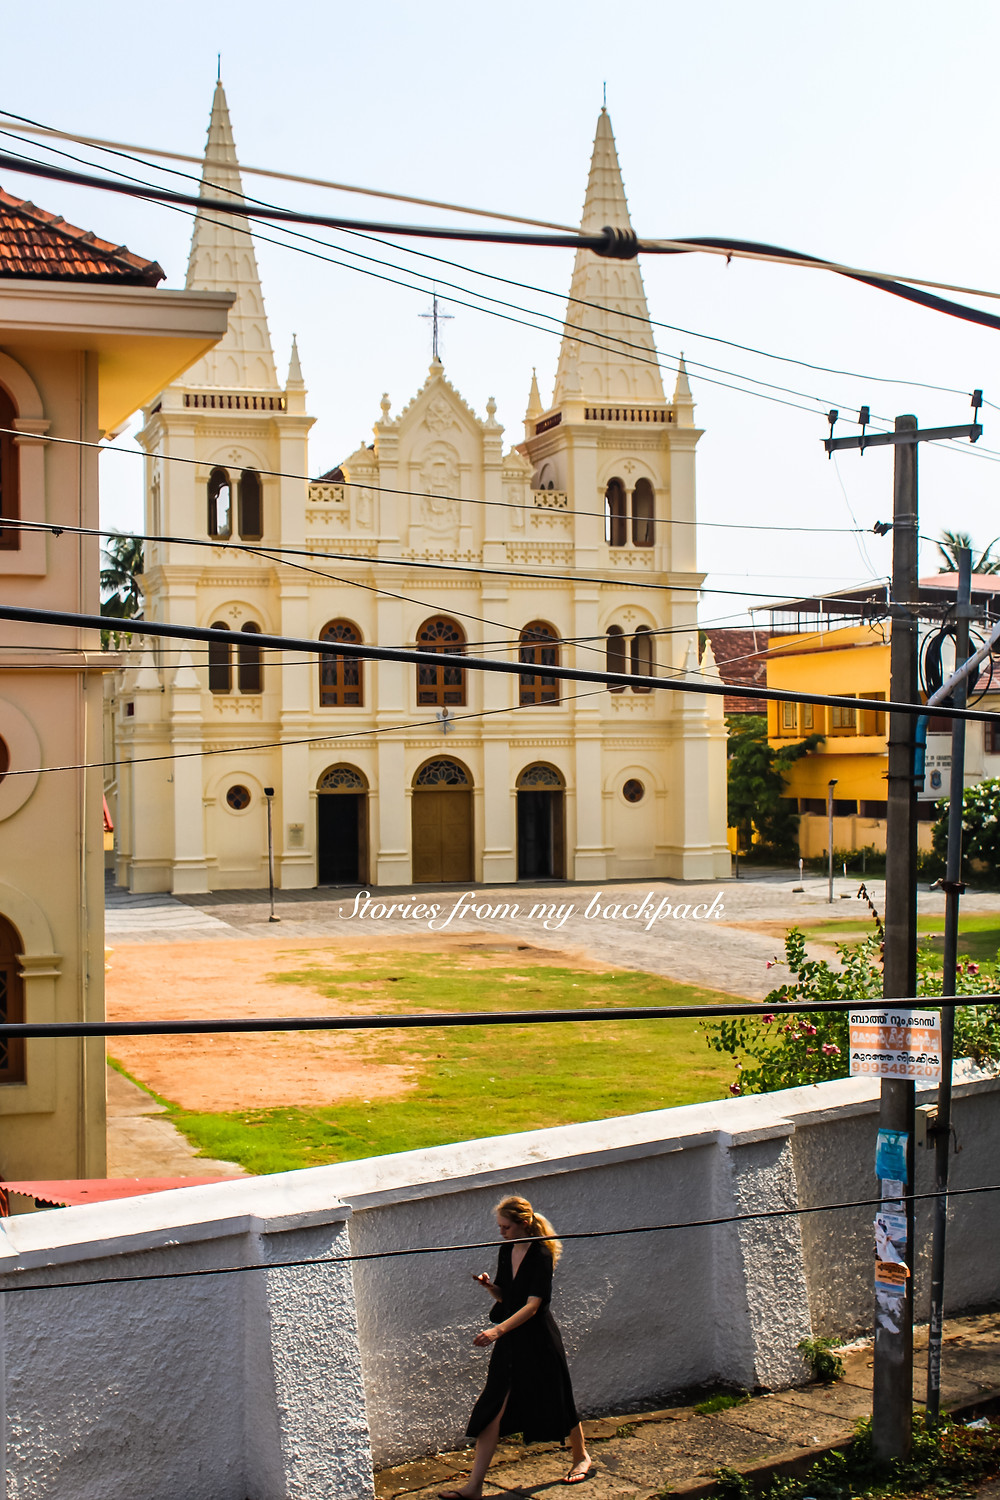 Santa Cruz Basilica, fort kochi sightseeing, churches in fort kochi, hostels in fort kochi, fort kochi tour